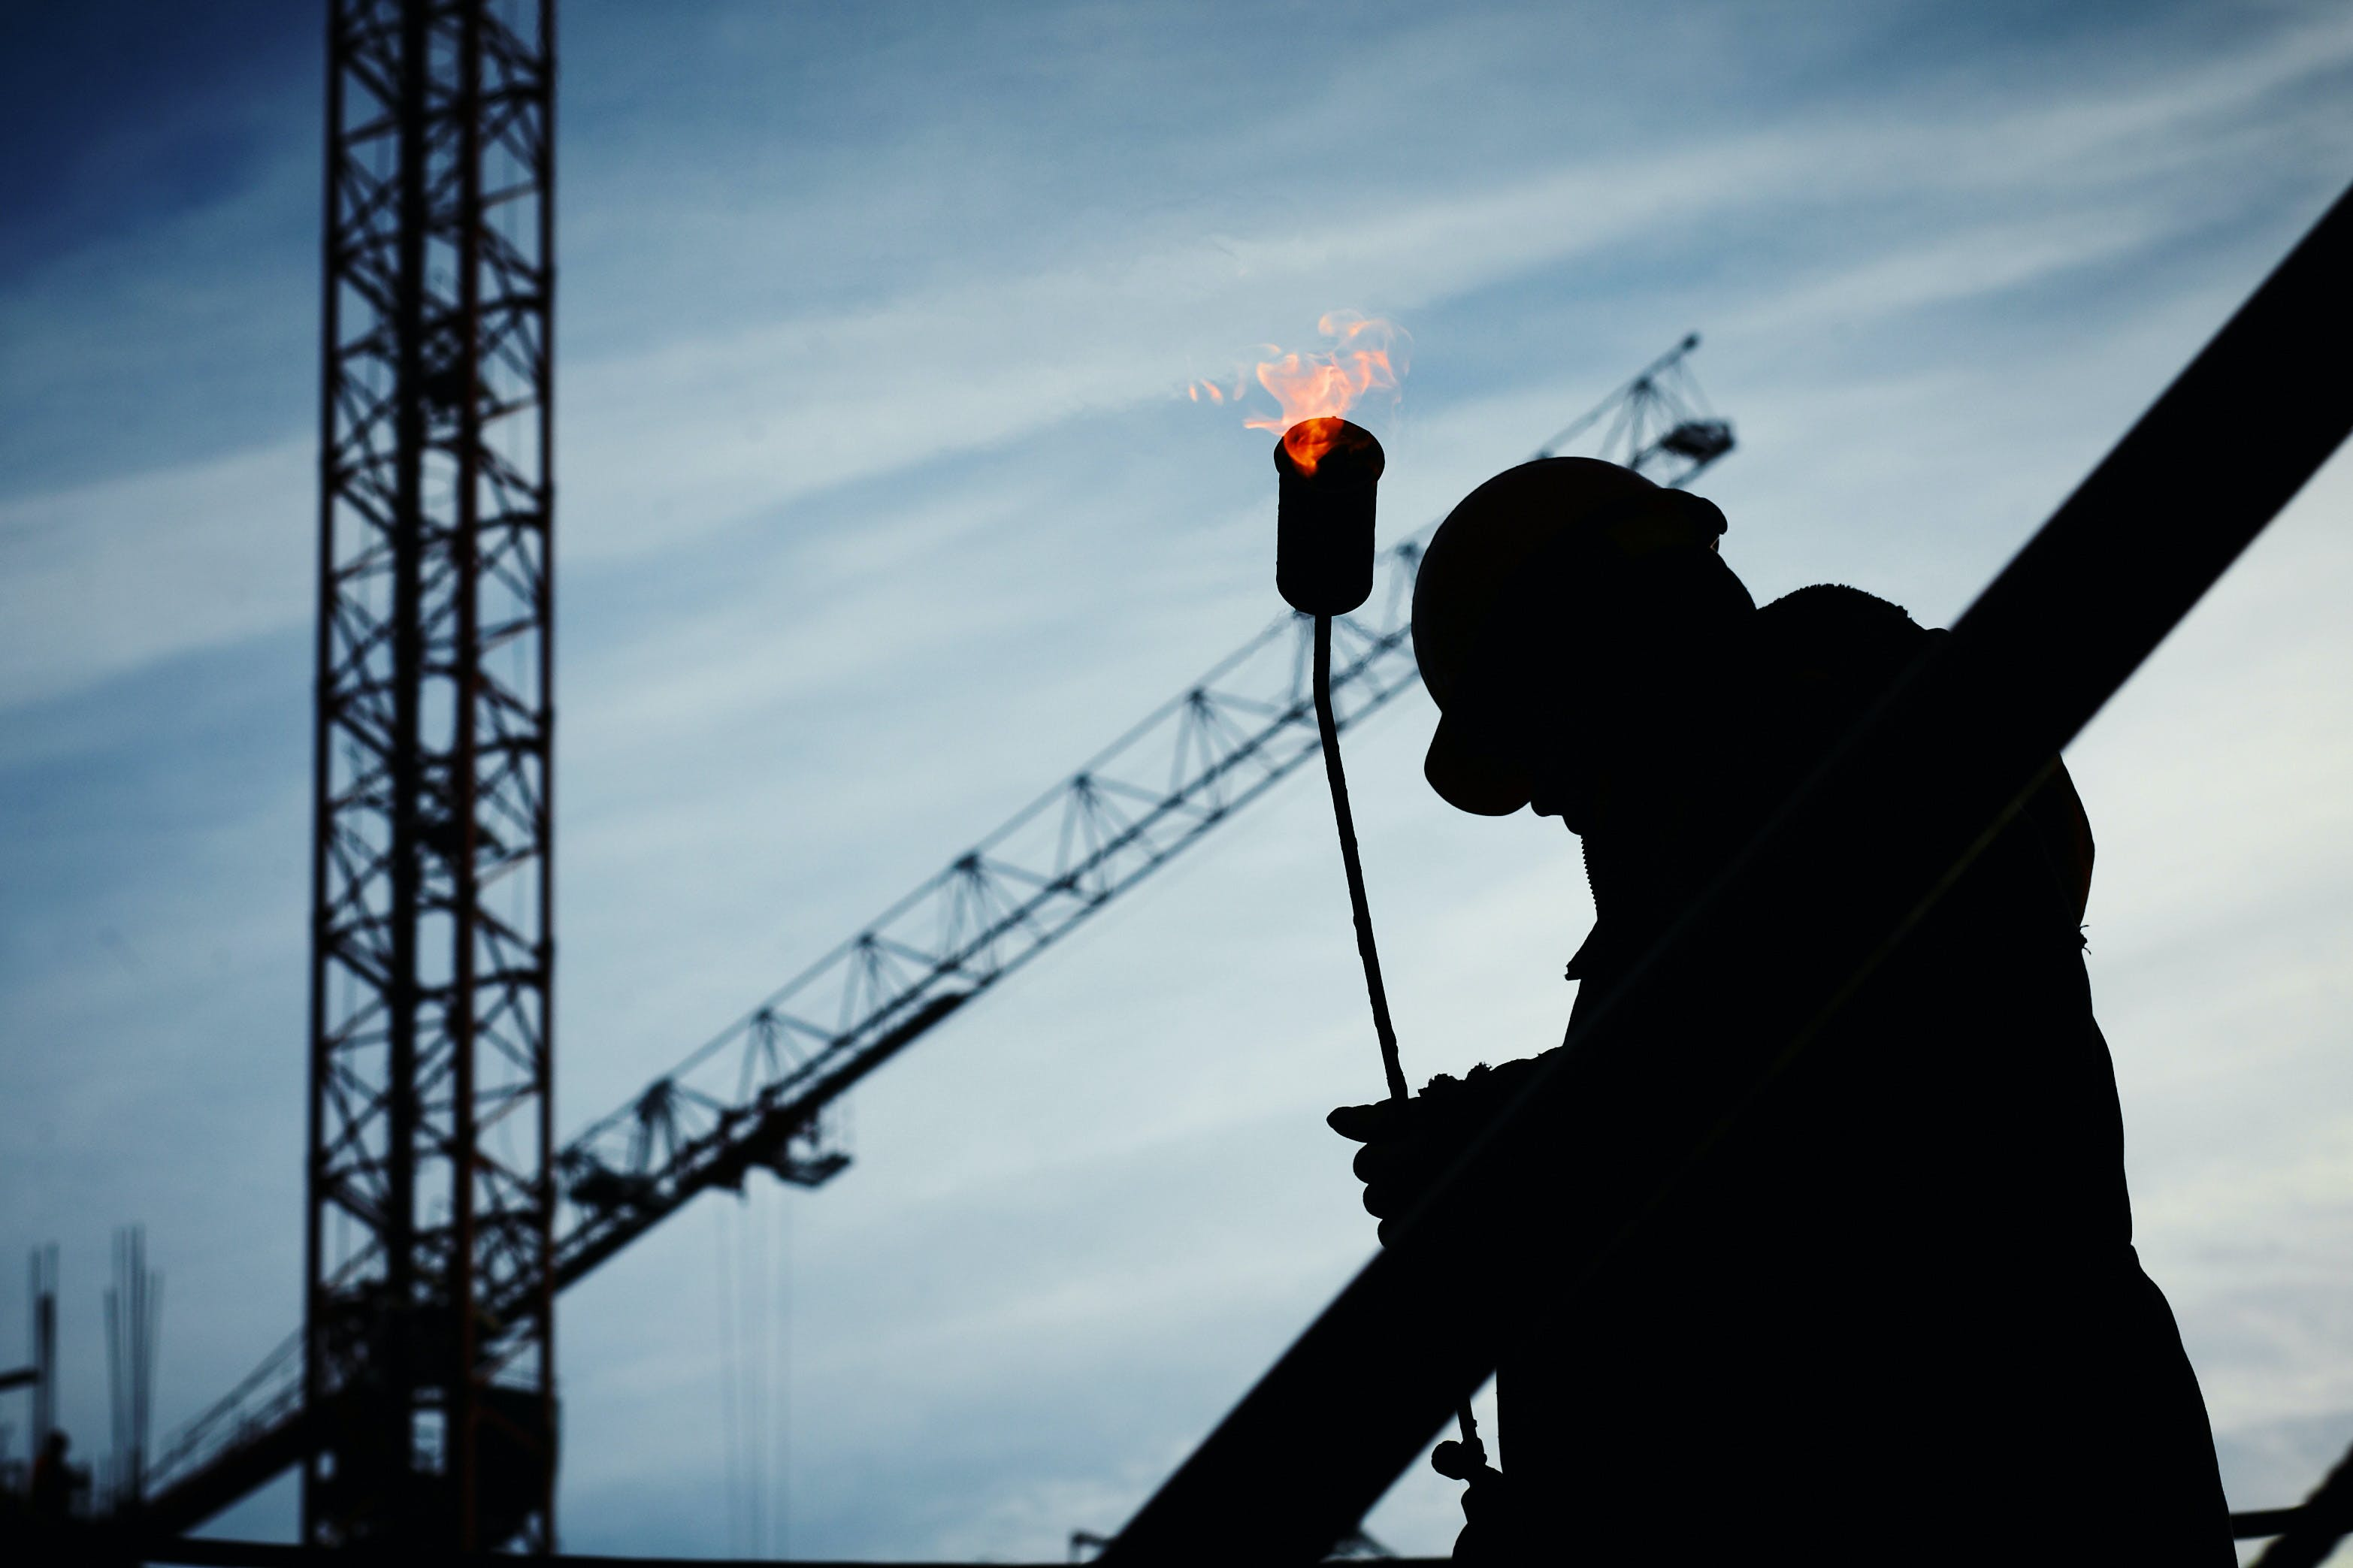 Silhouette of Man Holding Flamethrower